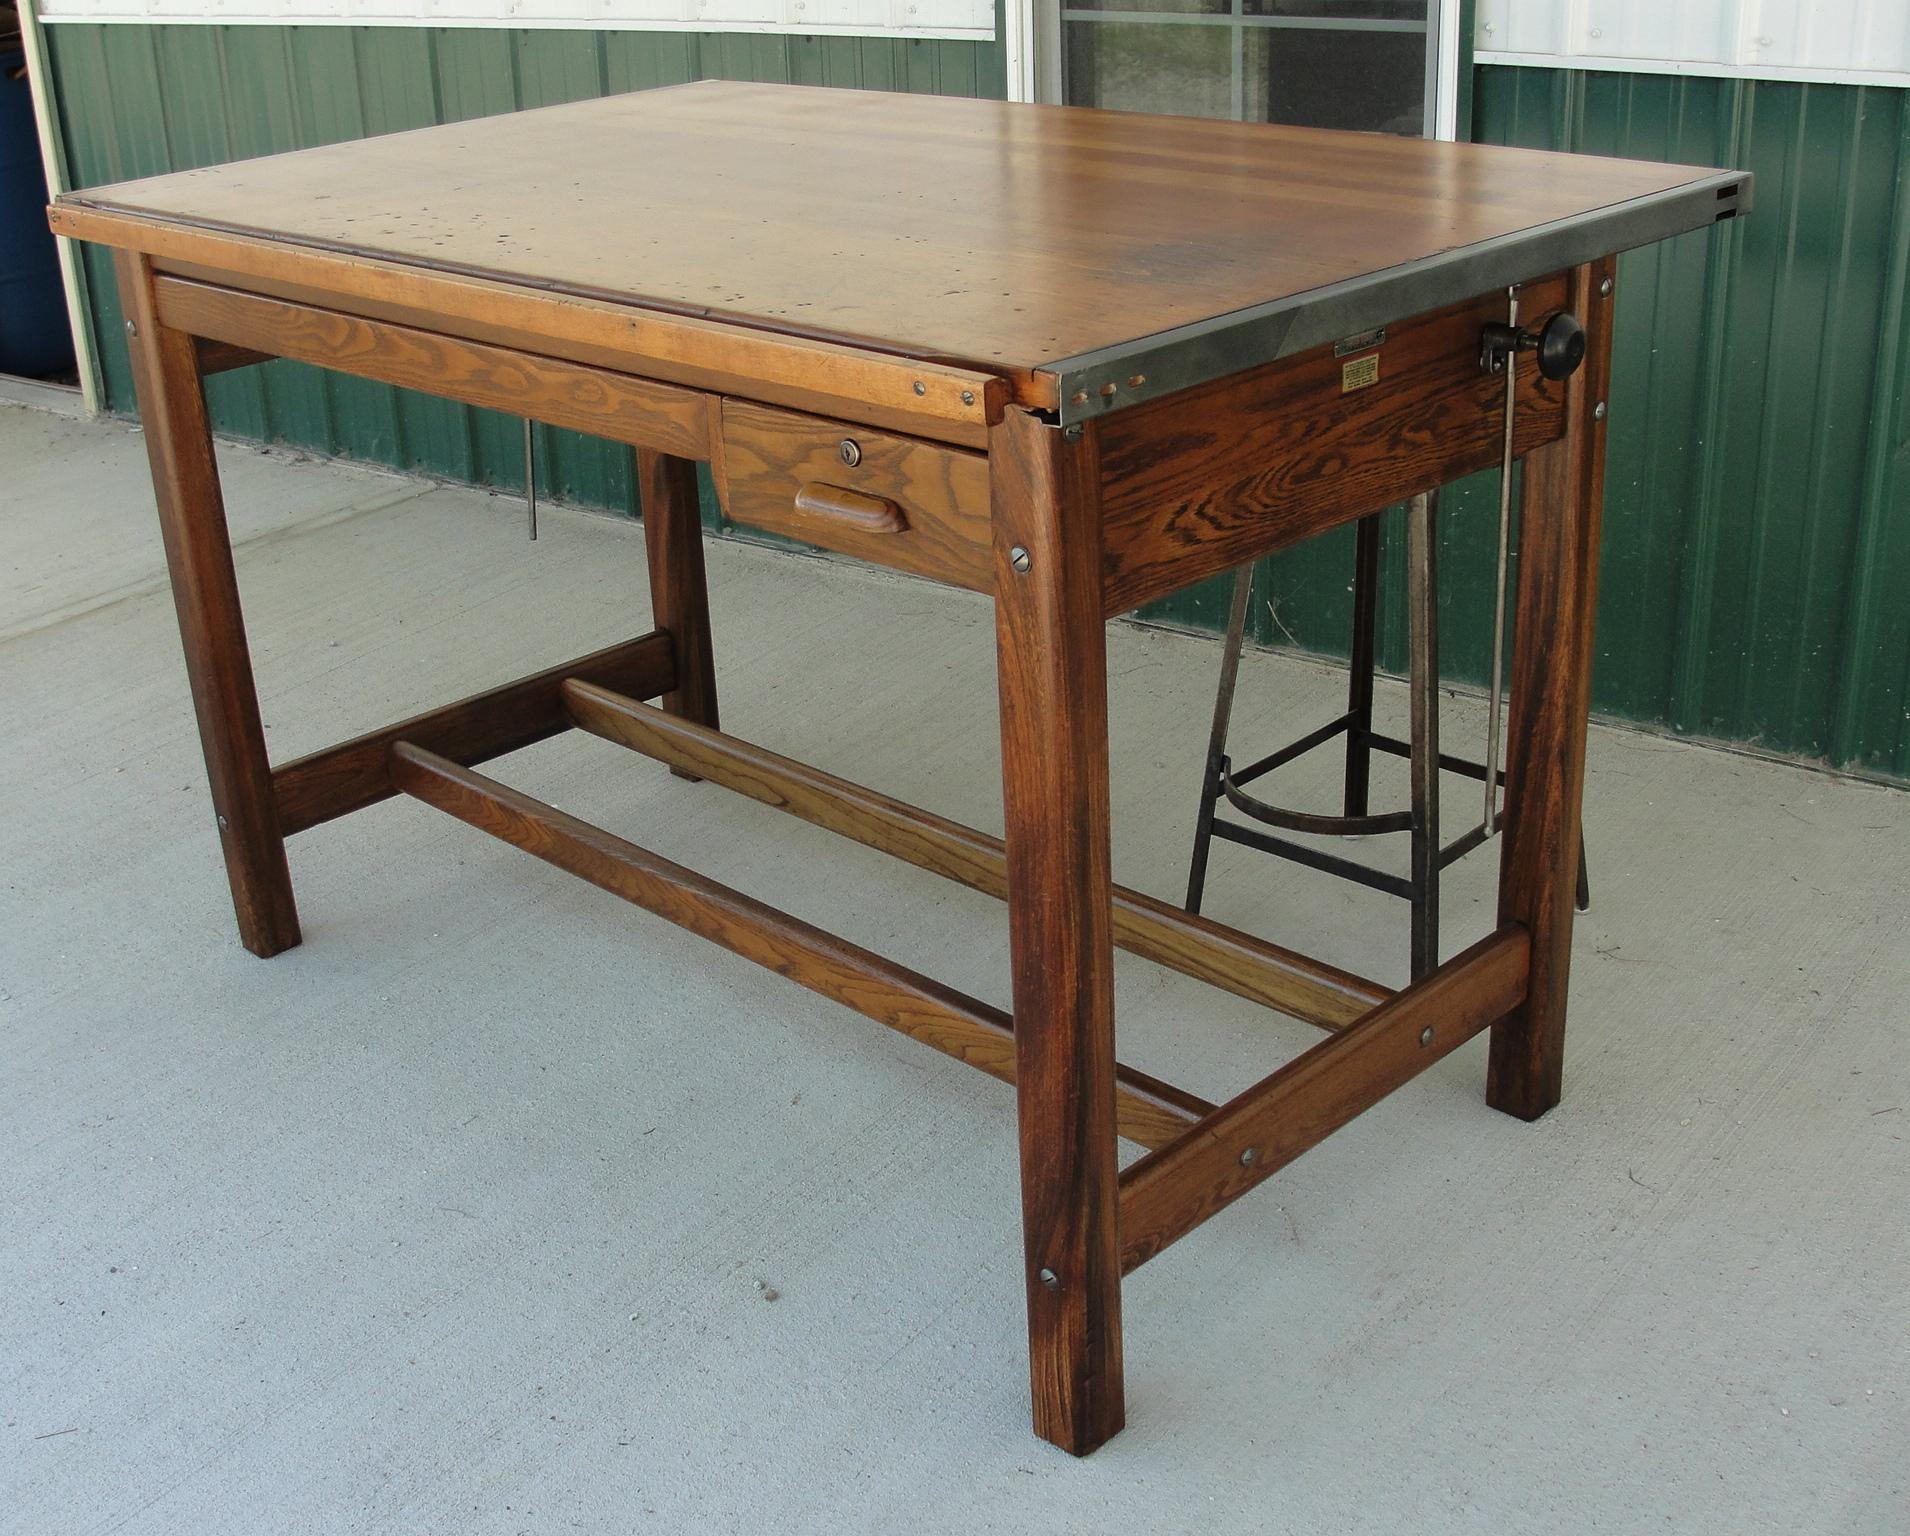 rl 62145 2l jpg 42 anton amp k antique french work table or kitchen island